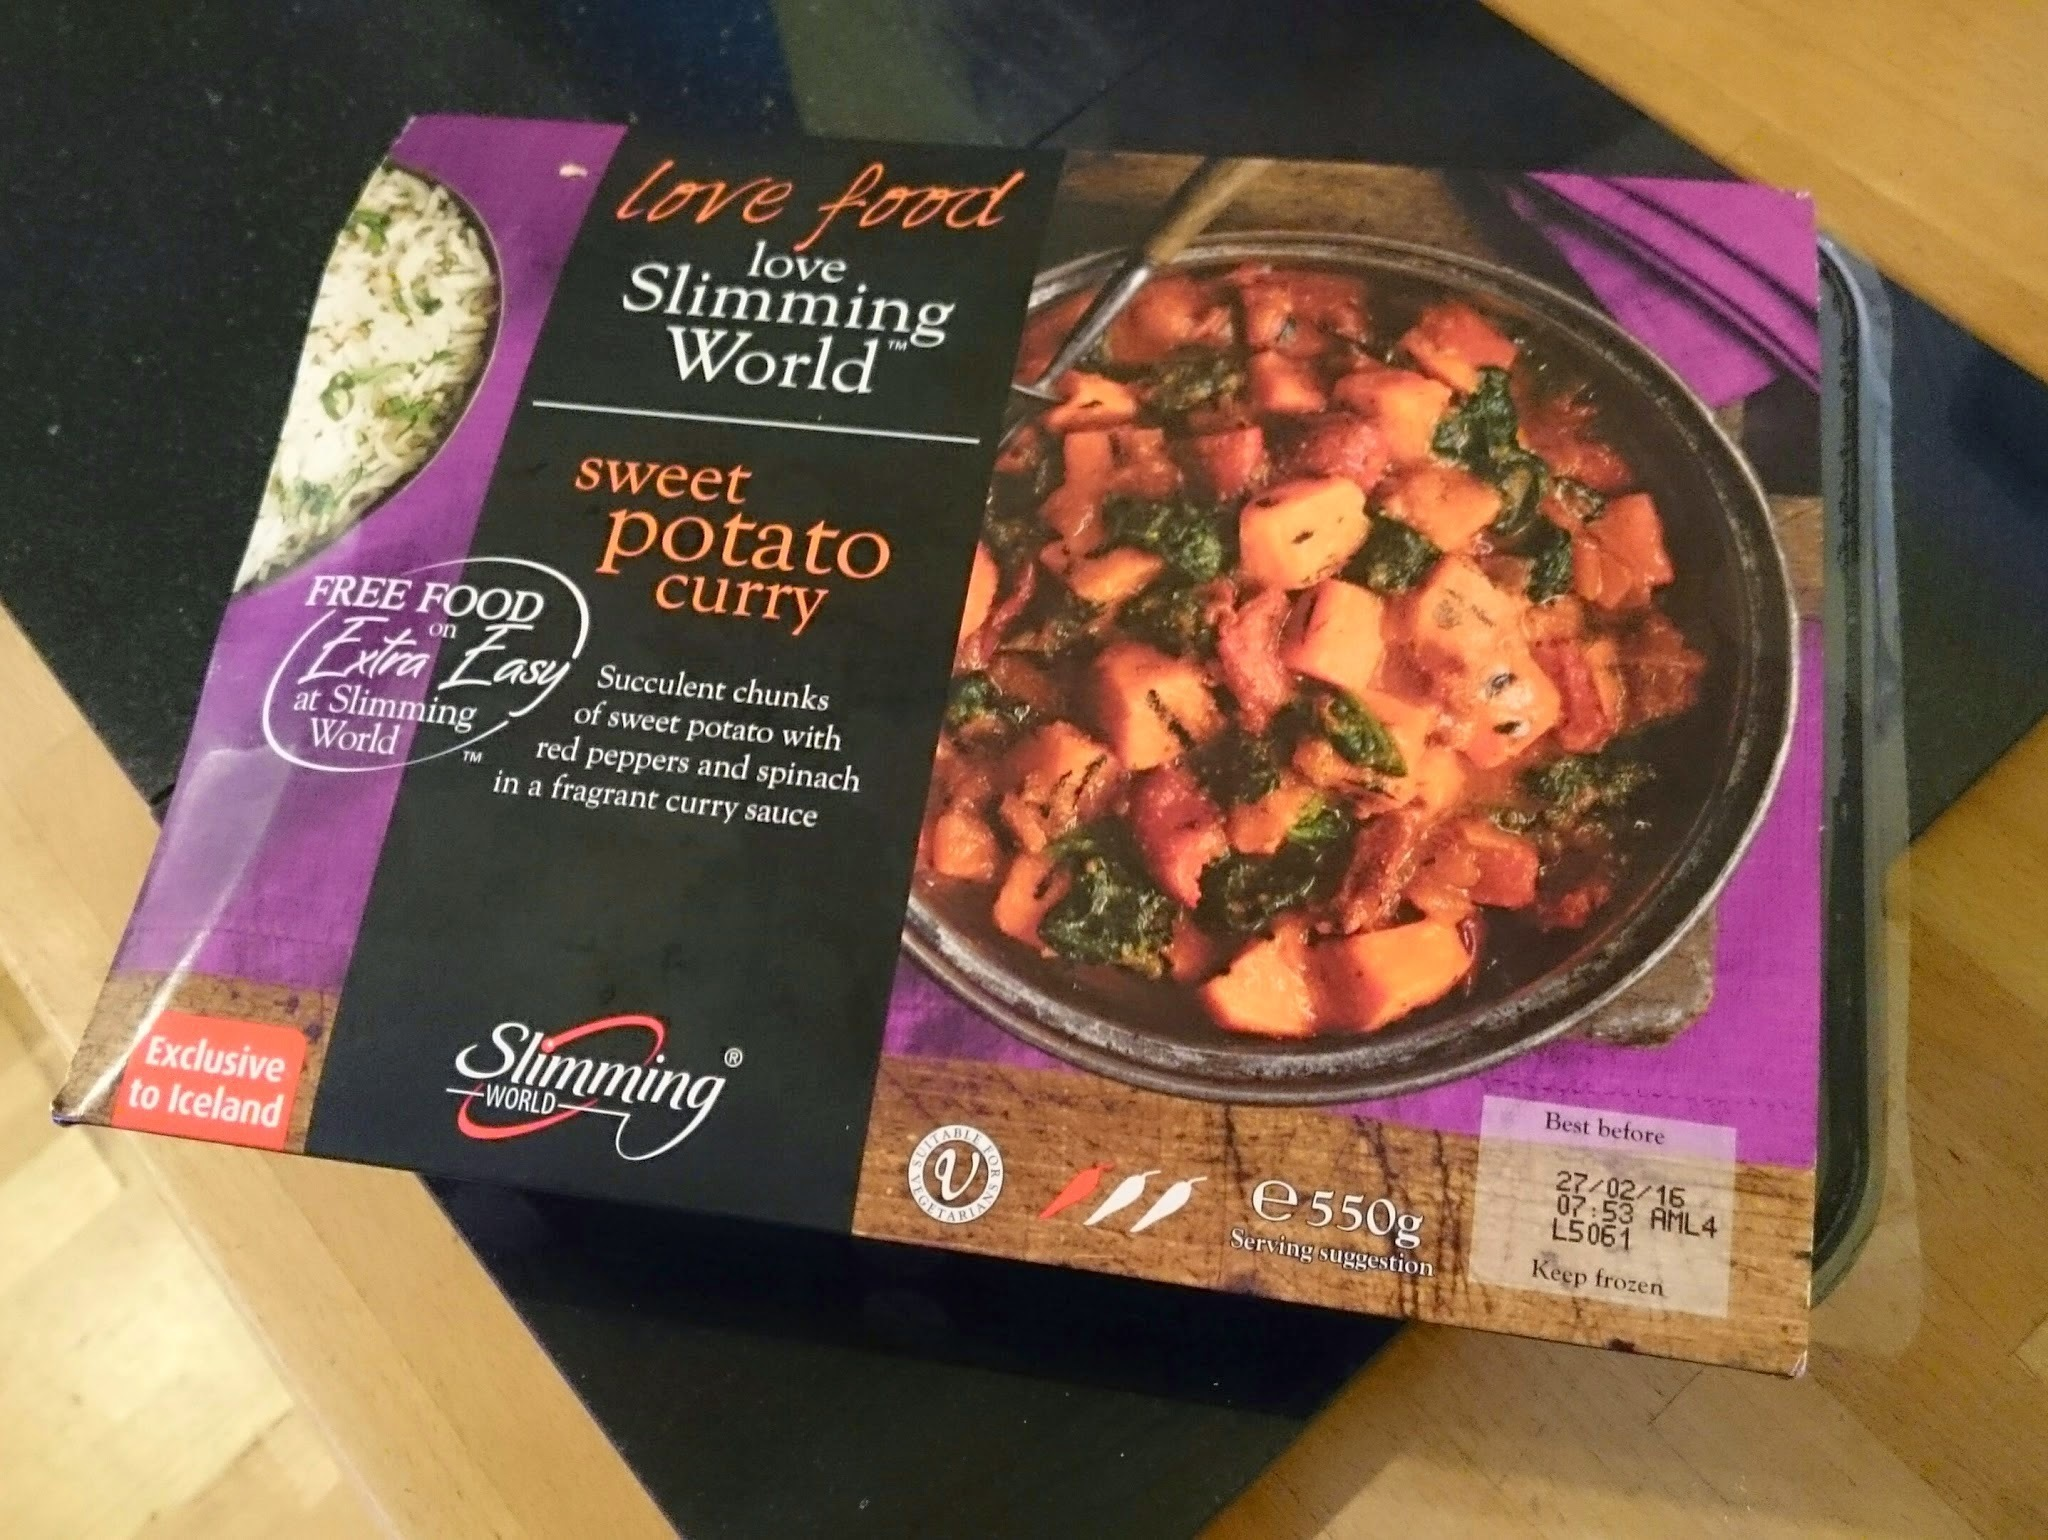 REVIEW! New Slimming World Ready Meals from Iceland - Sweet Potato Curry